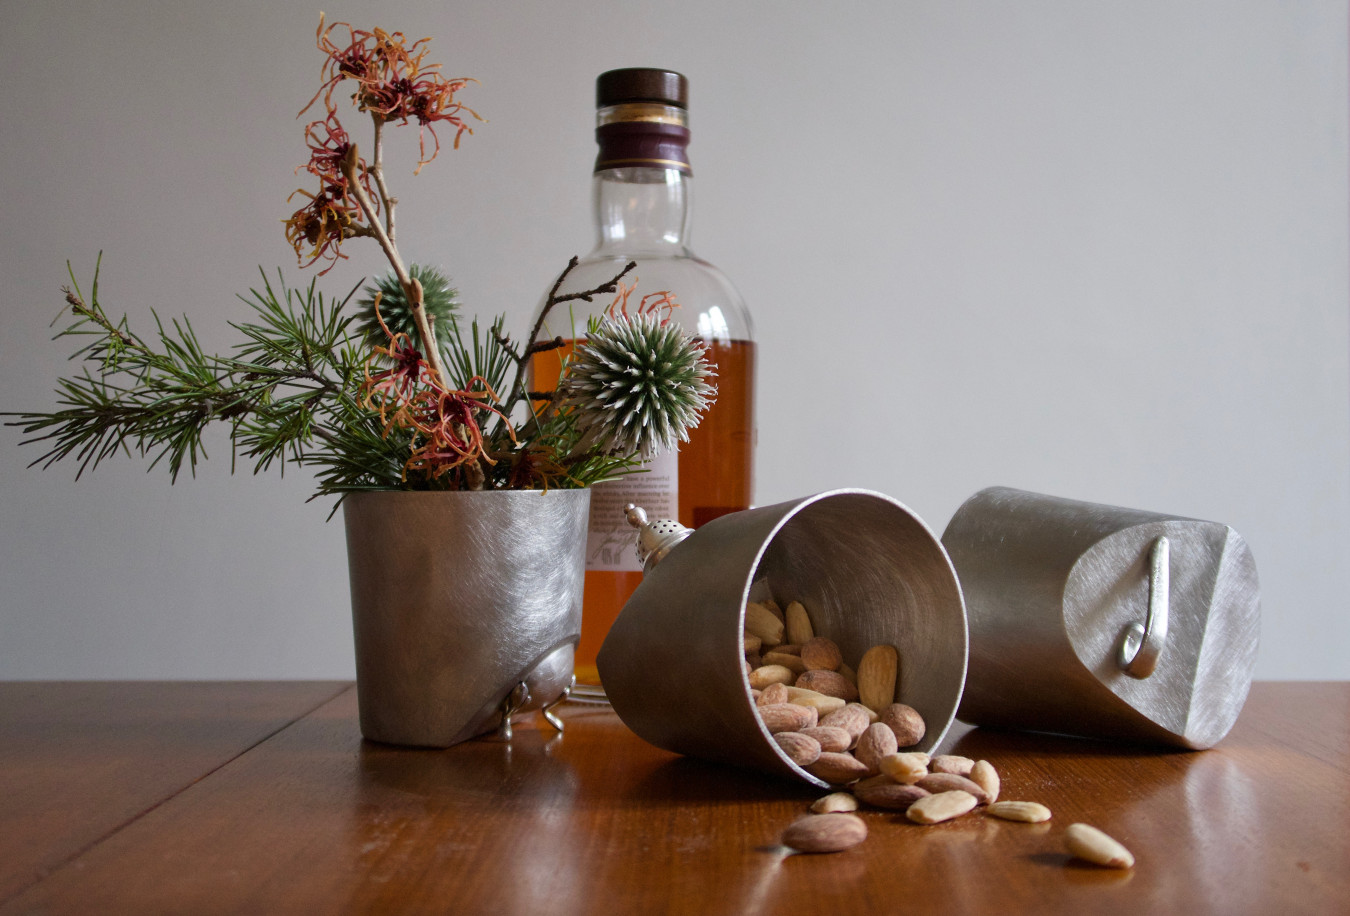 Image of pewter pots with a vintage element added, holding snacks and flowers given to donors as a gift.